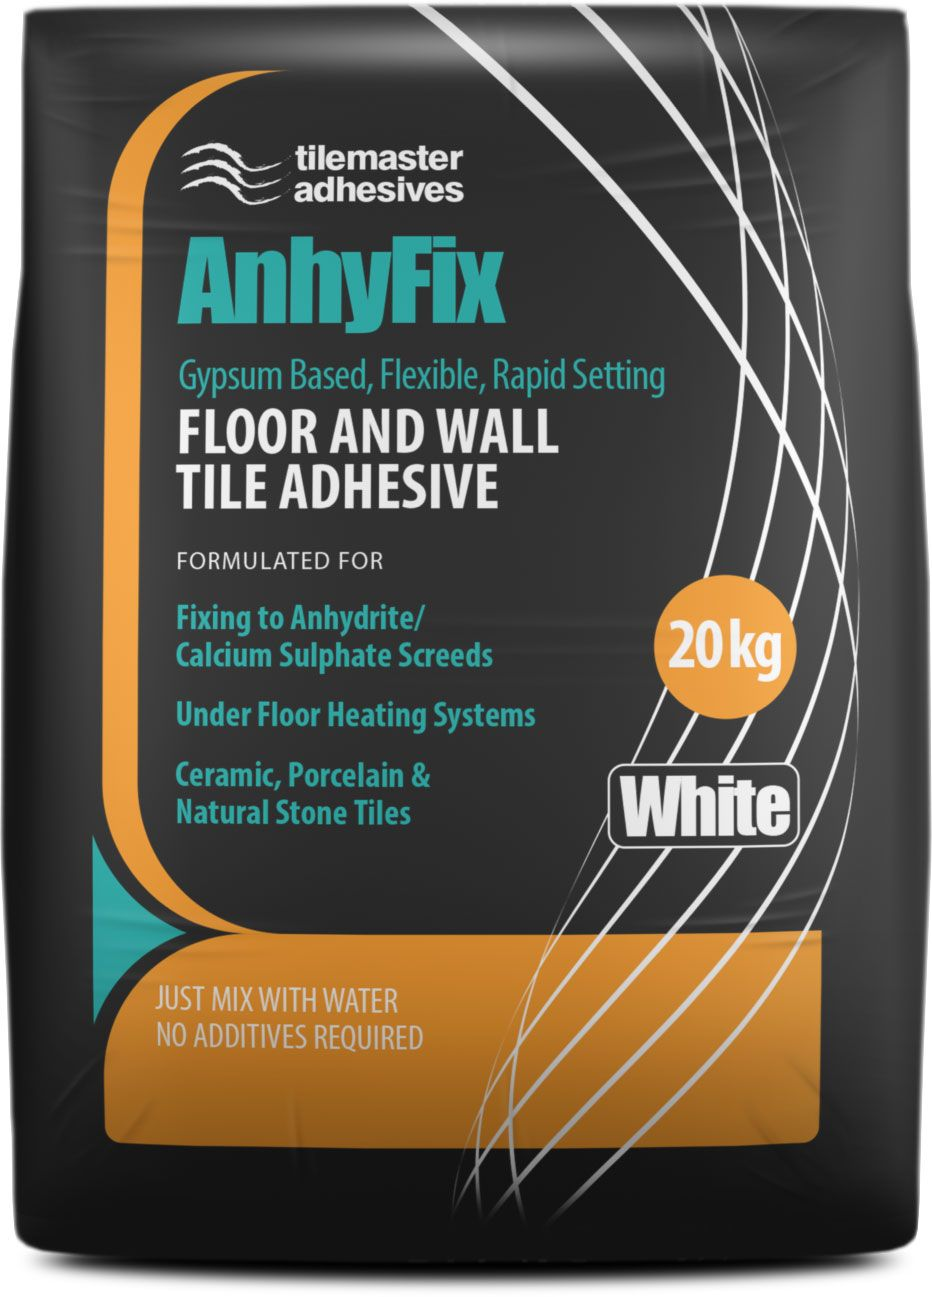 Tilemaster Adhesives Anhyfix White Visit Us In At Horncastle Tiles Limited Lincolnshire For The Best Uk Prices